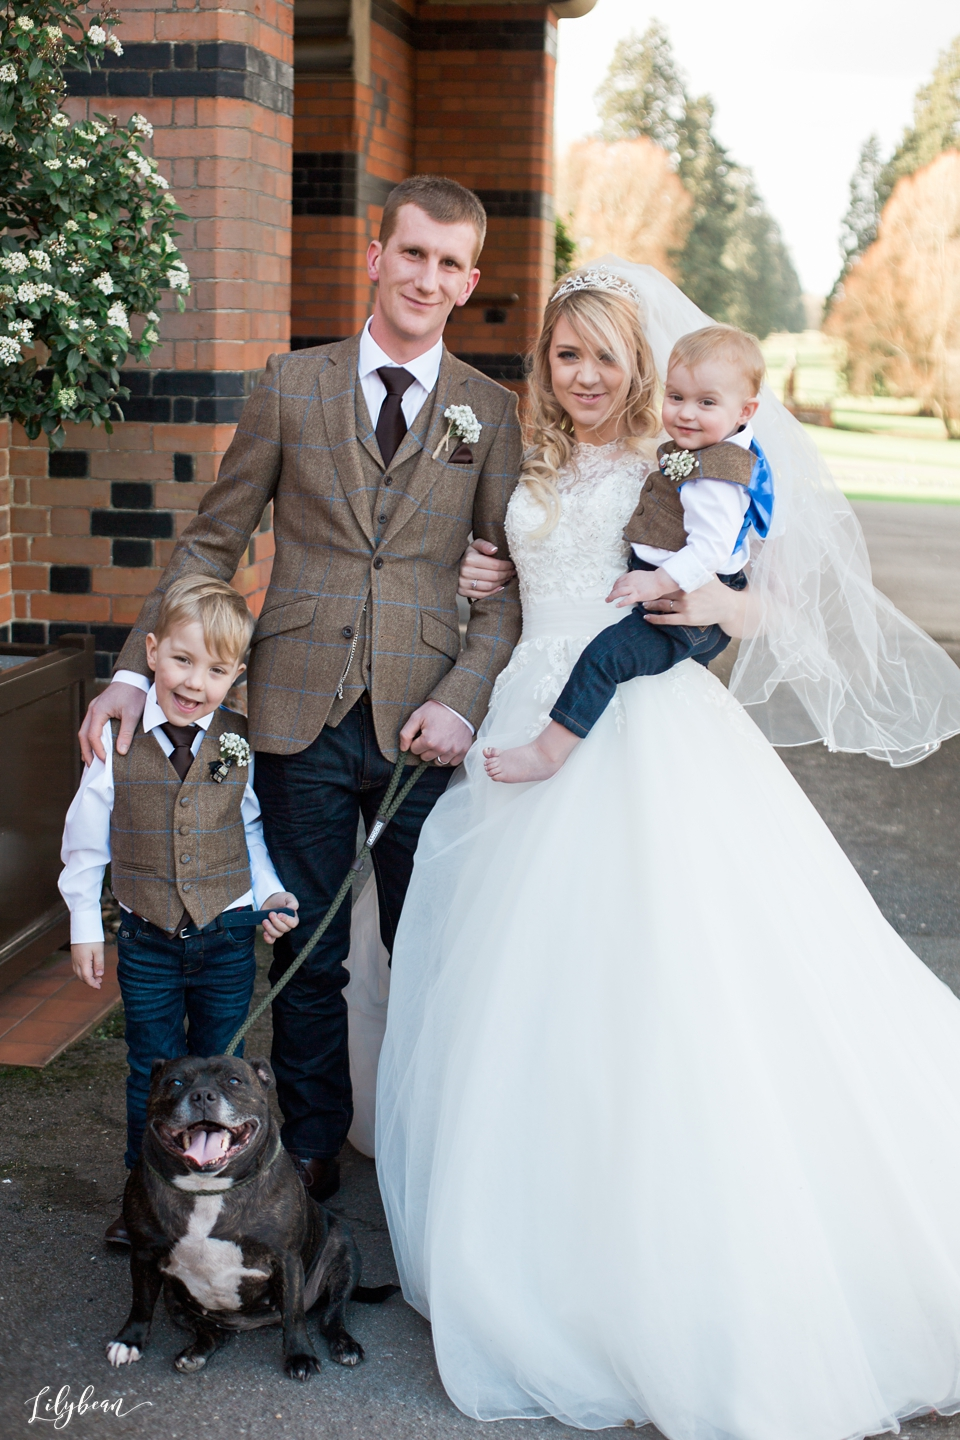 Natural family portrait on wedding day